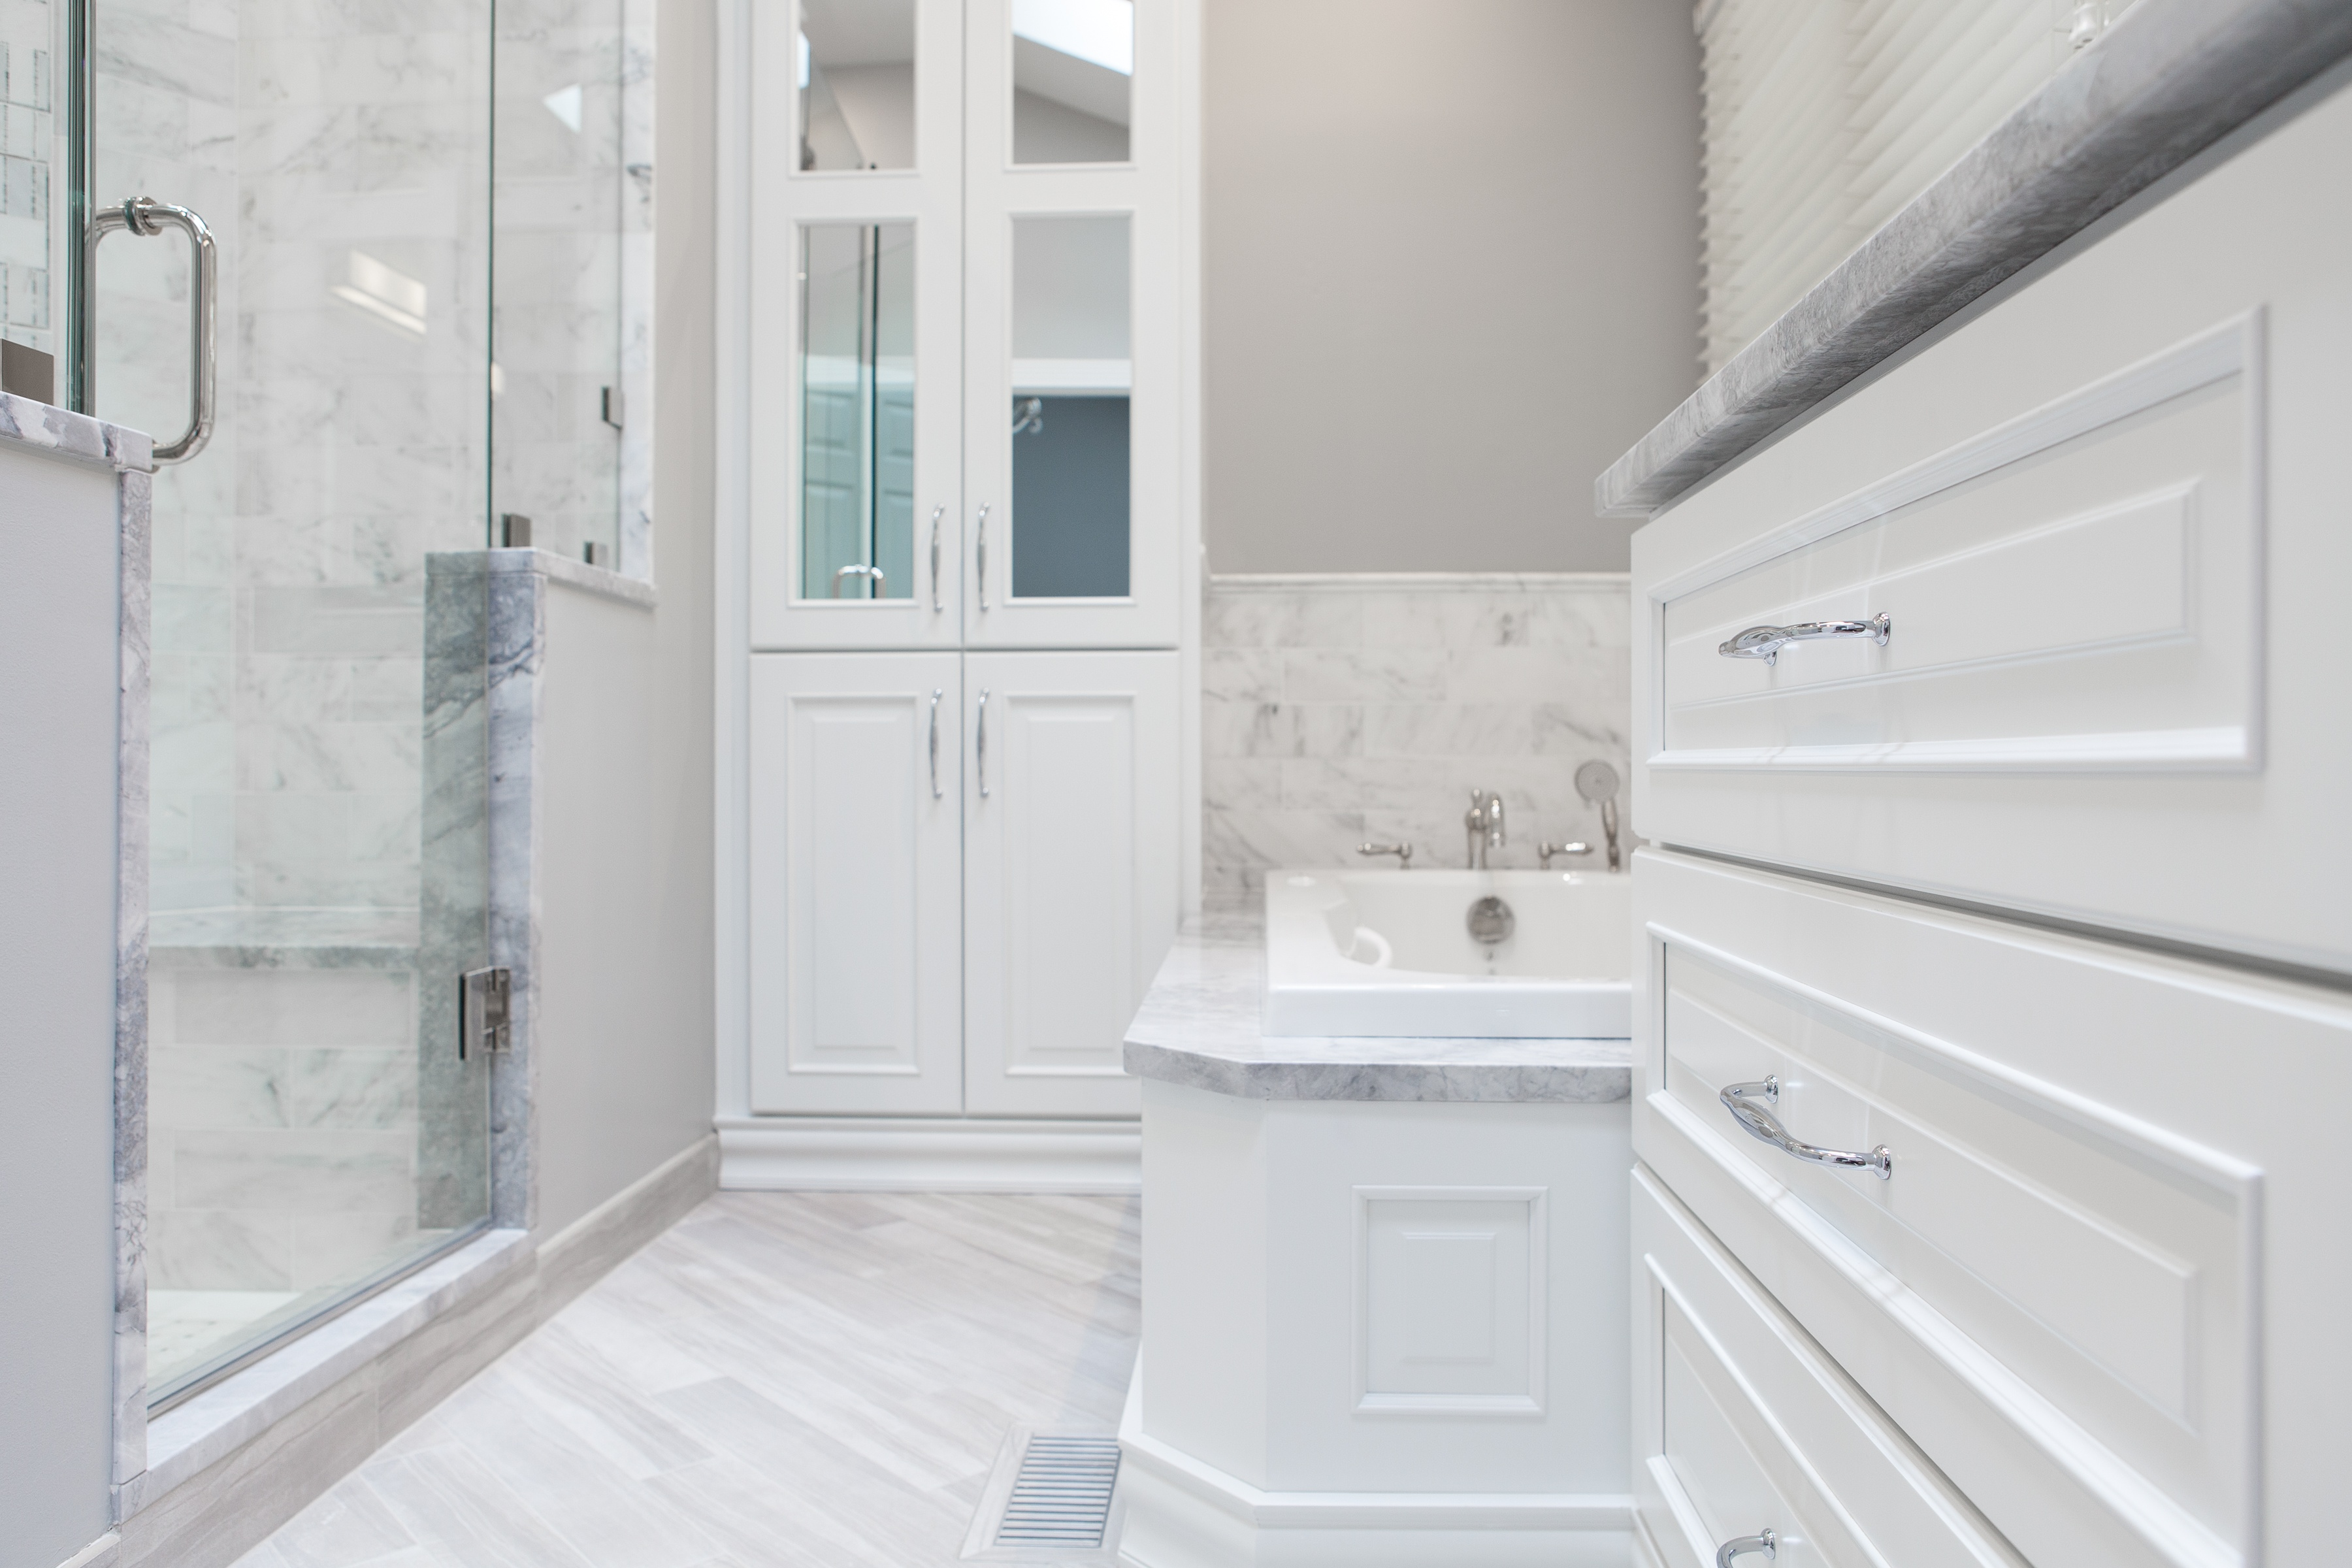 How Much Does It Cost To Remodel A Bathroom In Chicagou0027s North Shore (2018)?